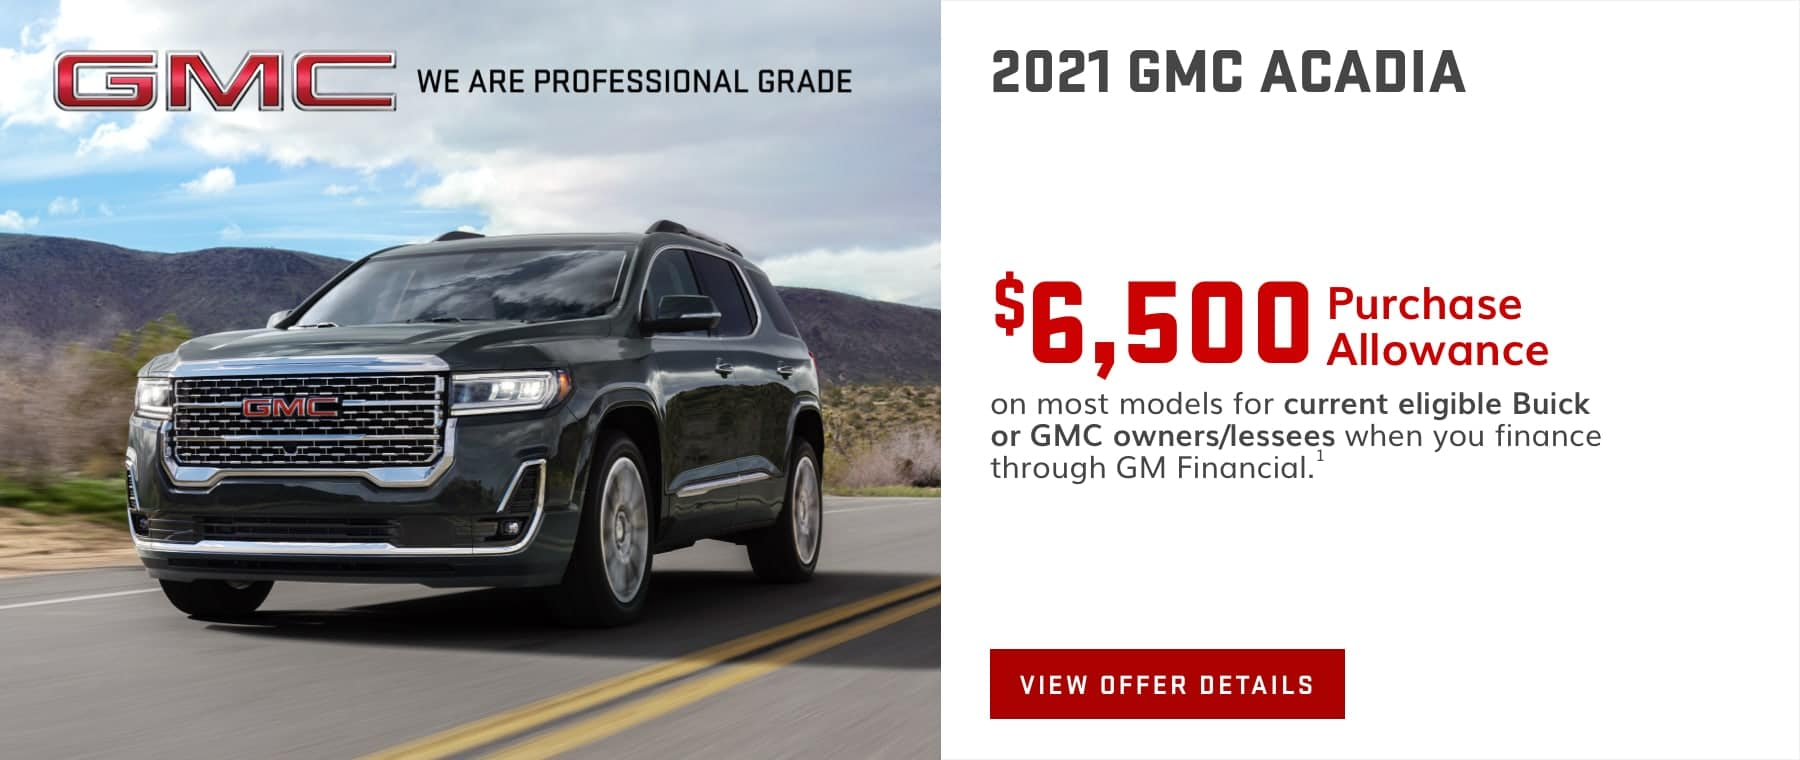 $6,500 Purchase Allowance on most models for current eligible Buick or GMC owners/lessees when you finance through GM Financial.1